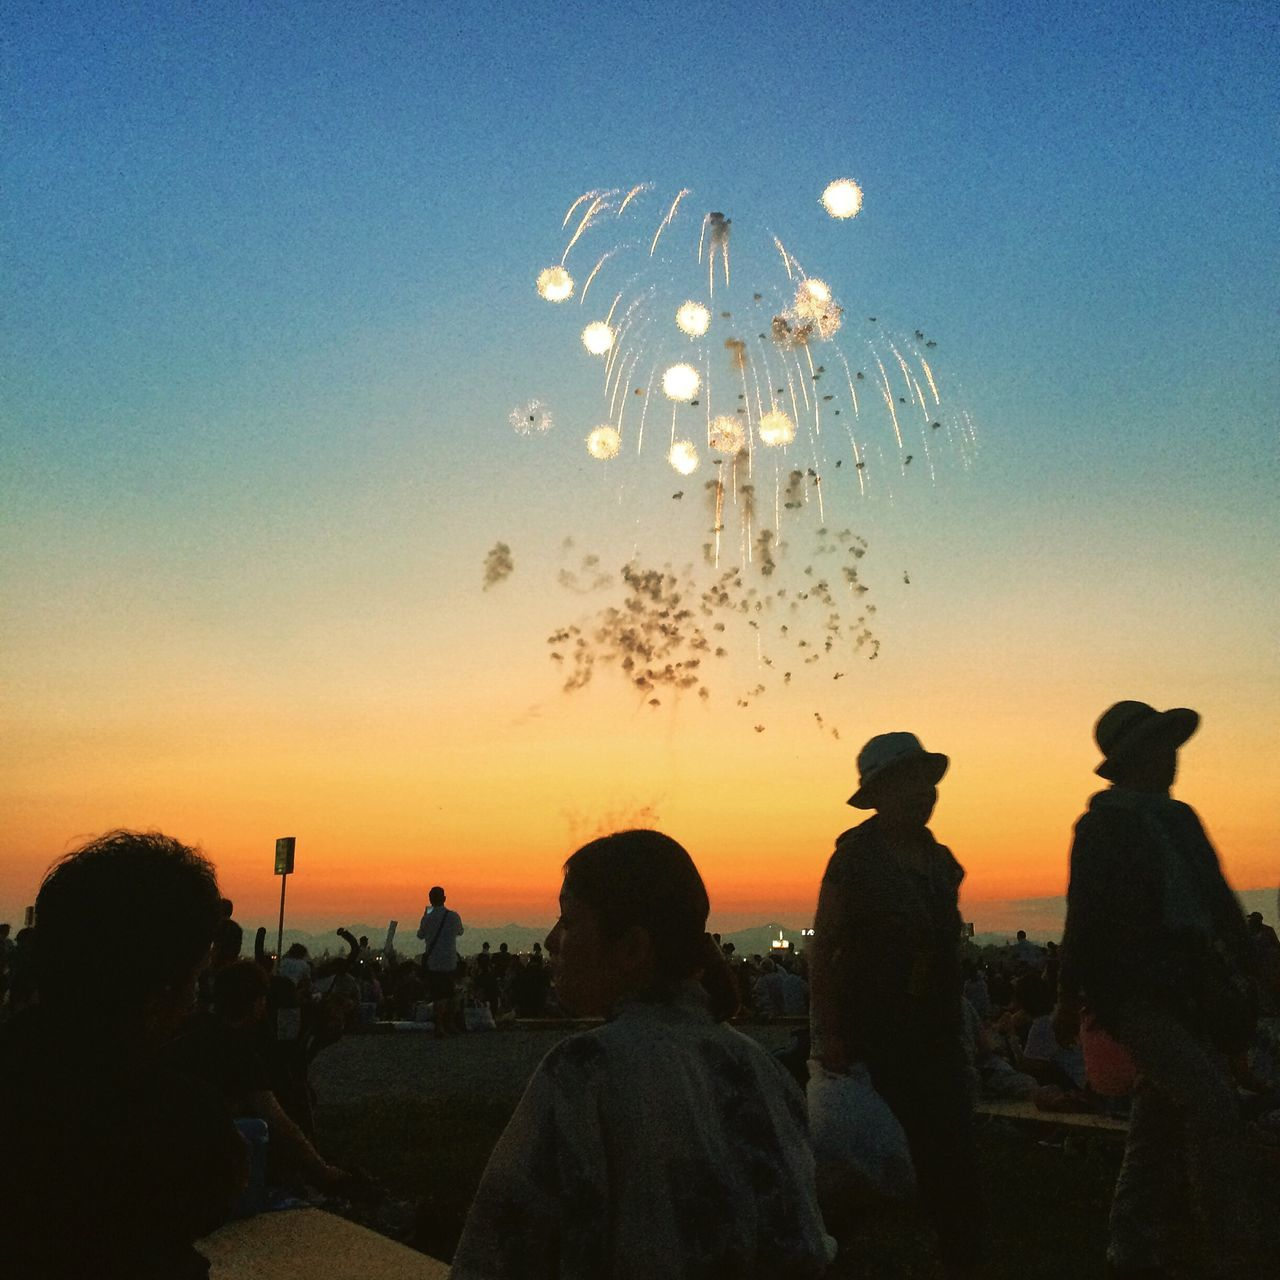 celebration, large group of people, silhouette, sky, real people, togetherness, sunset, flying, event, men, lifestyles, outdoors, women, clear sky, night, nature, people